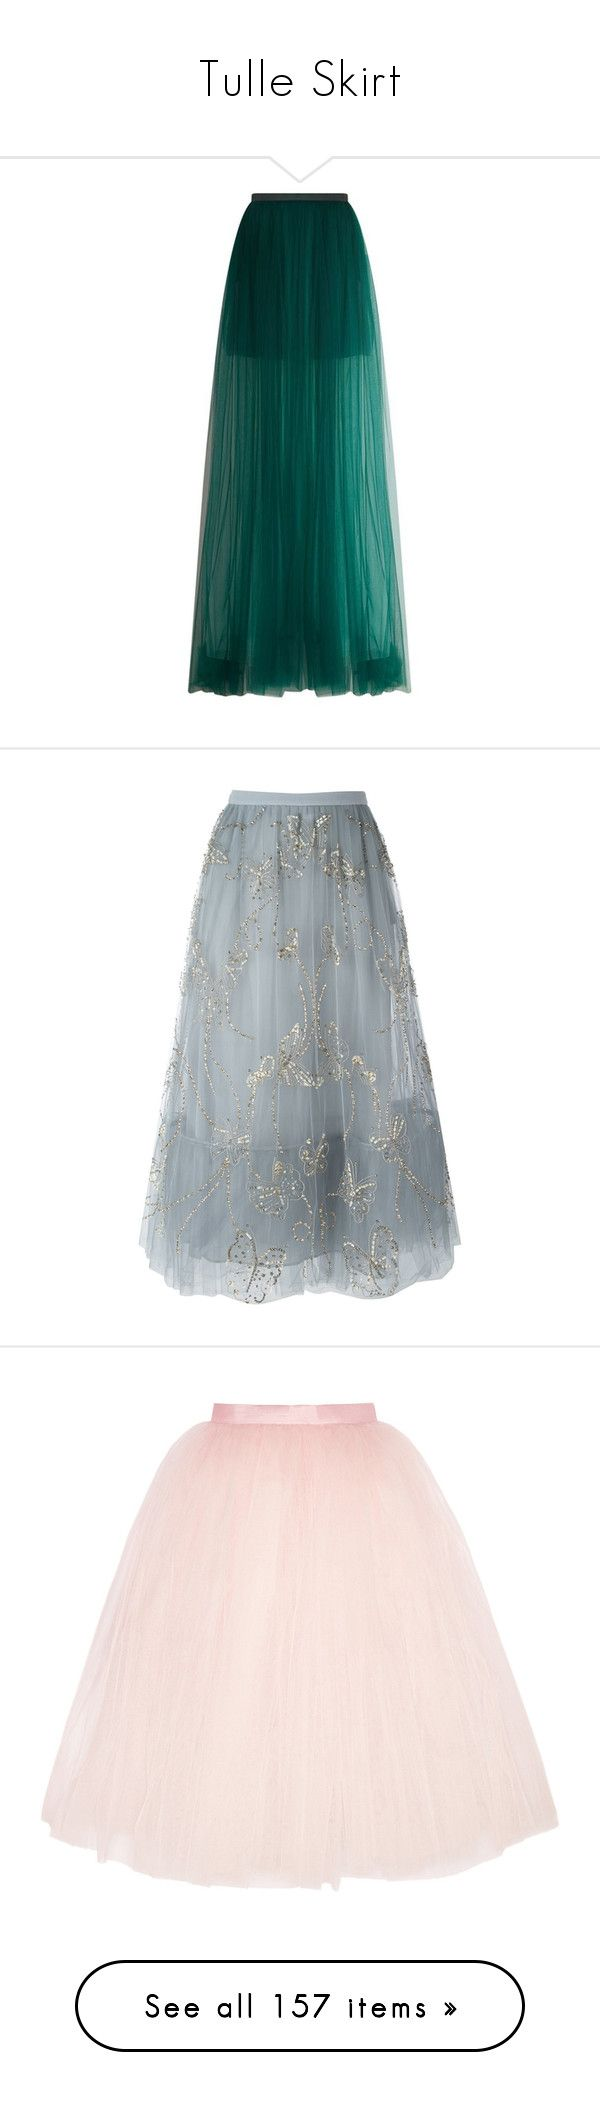 """""""Tulle Skirt"""" by brassbracelets ❤ liked on Polyvore featuring skirts, bottoms, green skirt, long green skirt, delpozo, tulle skirt, cocktail skirt, saias, valentino and grey"""